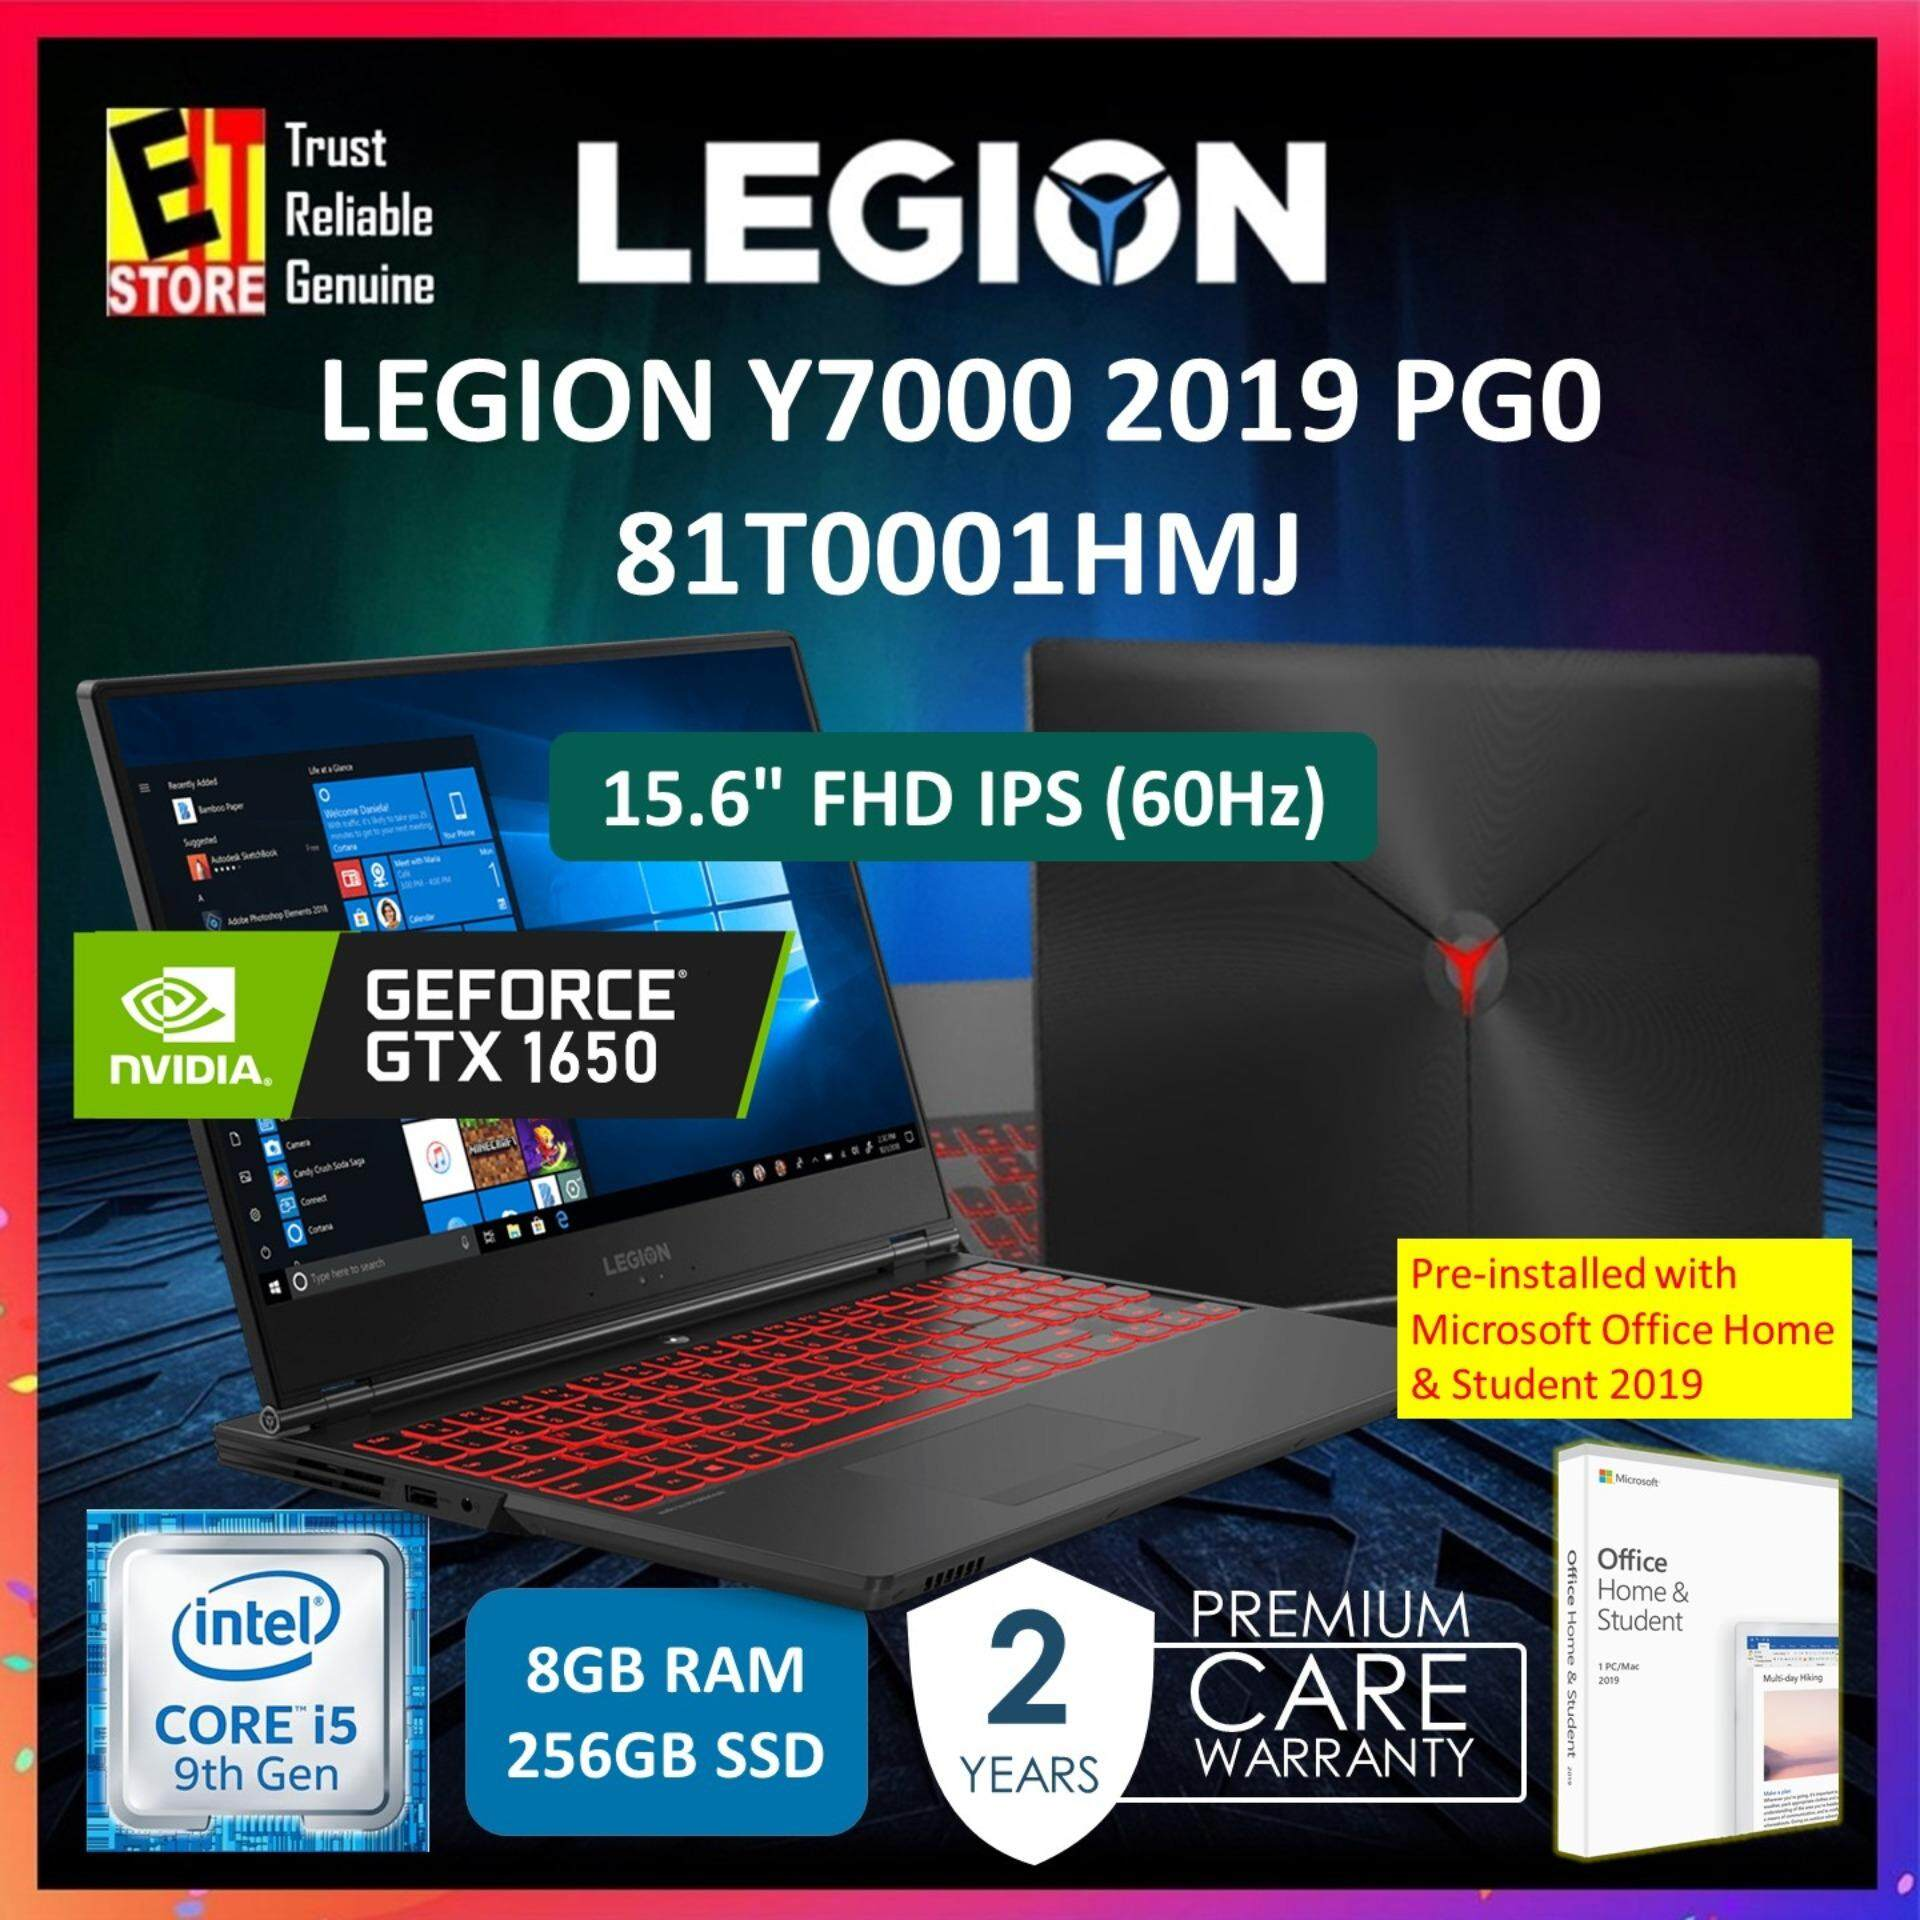 LENOVO LEGION Y7000 Gaming Laptop 81T0001HMJ I5-9300H /8GB/ 256GB PCIe SSD /4GB nVIDIA GTX 1650 /15.6  FHD /W10/2YRS /WITH OFFICE HOME & STUDENT 2019 Malaysia